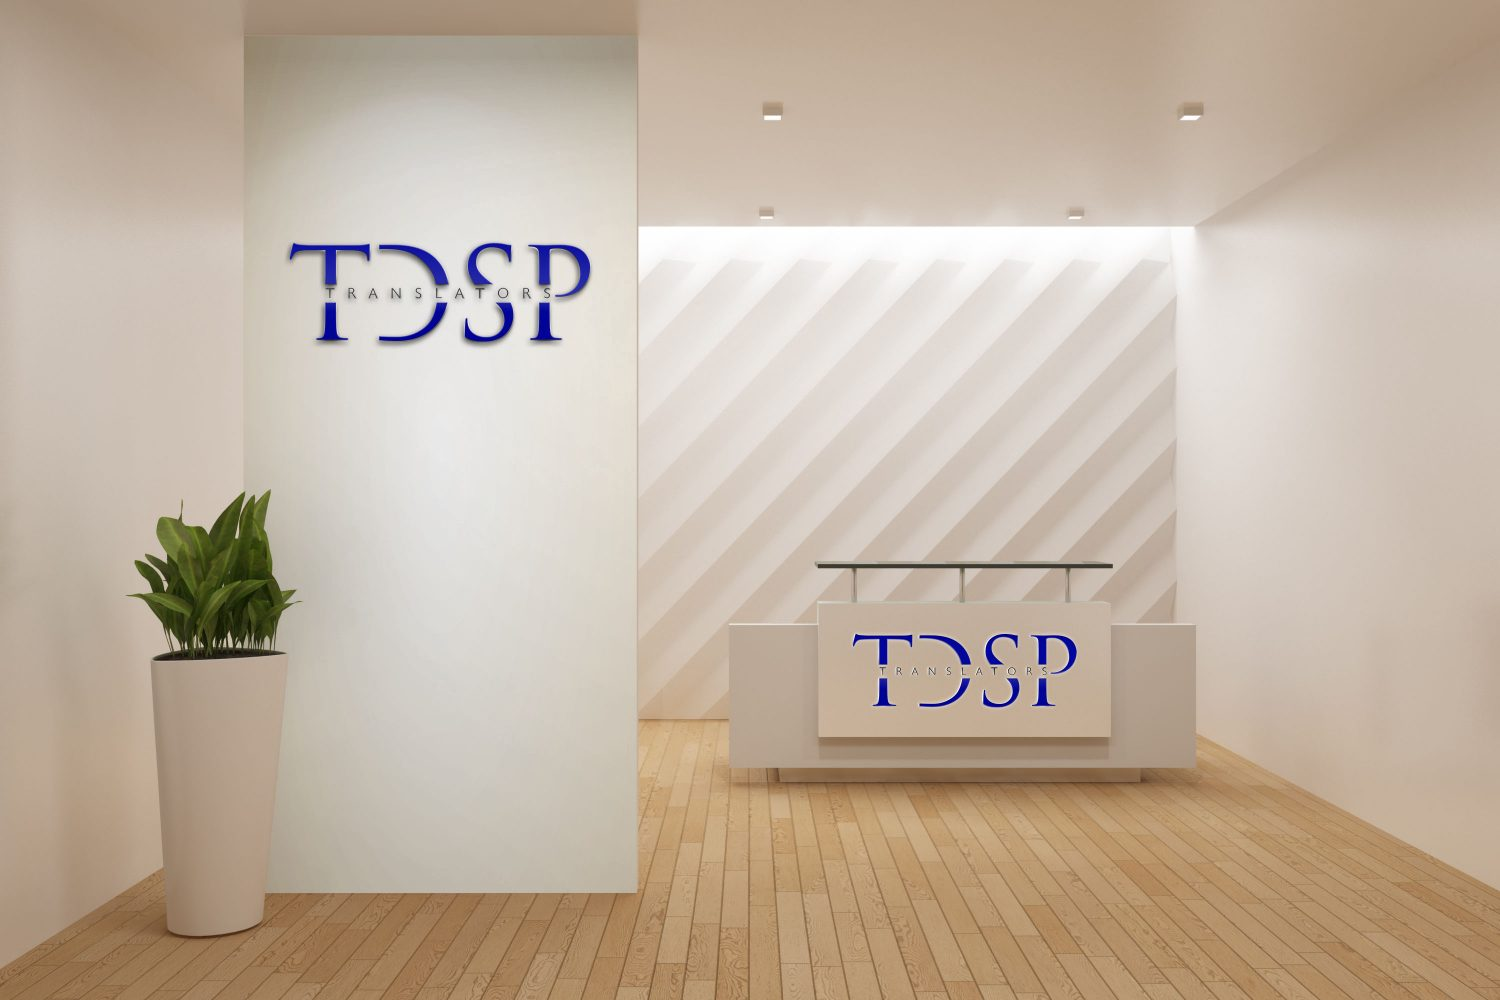 TDSP Translators